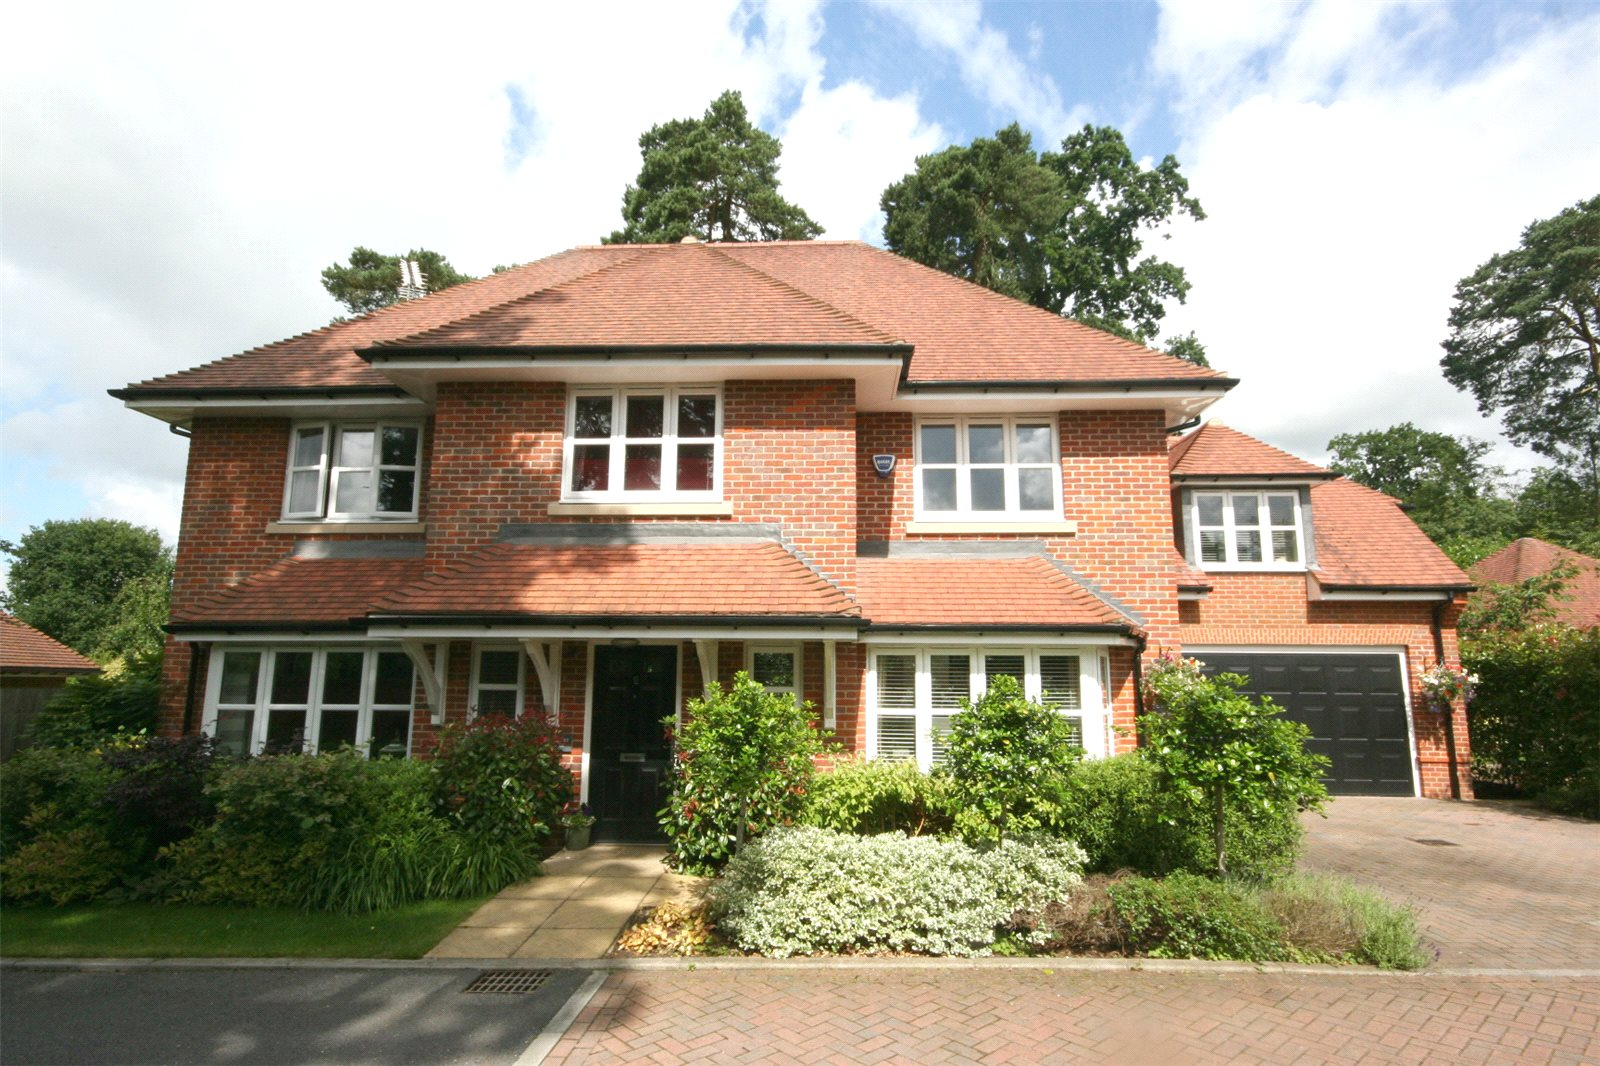 Single Family Home for Sale at Ortman Close, Gerrards Cross, Buckinghamshire, SL9 Gerrards Cross, England